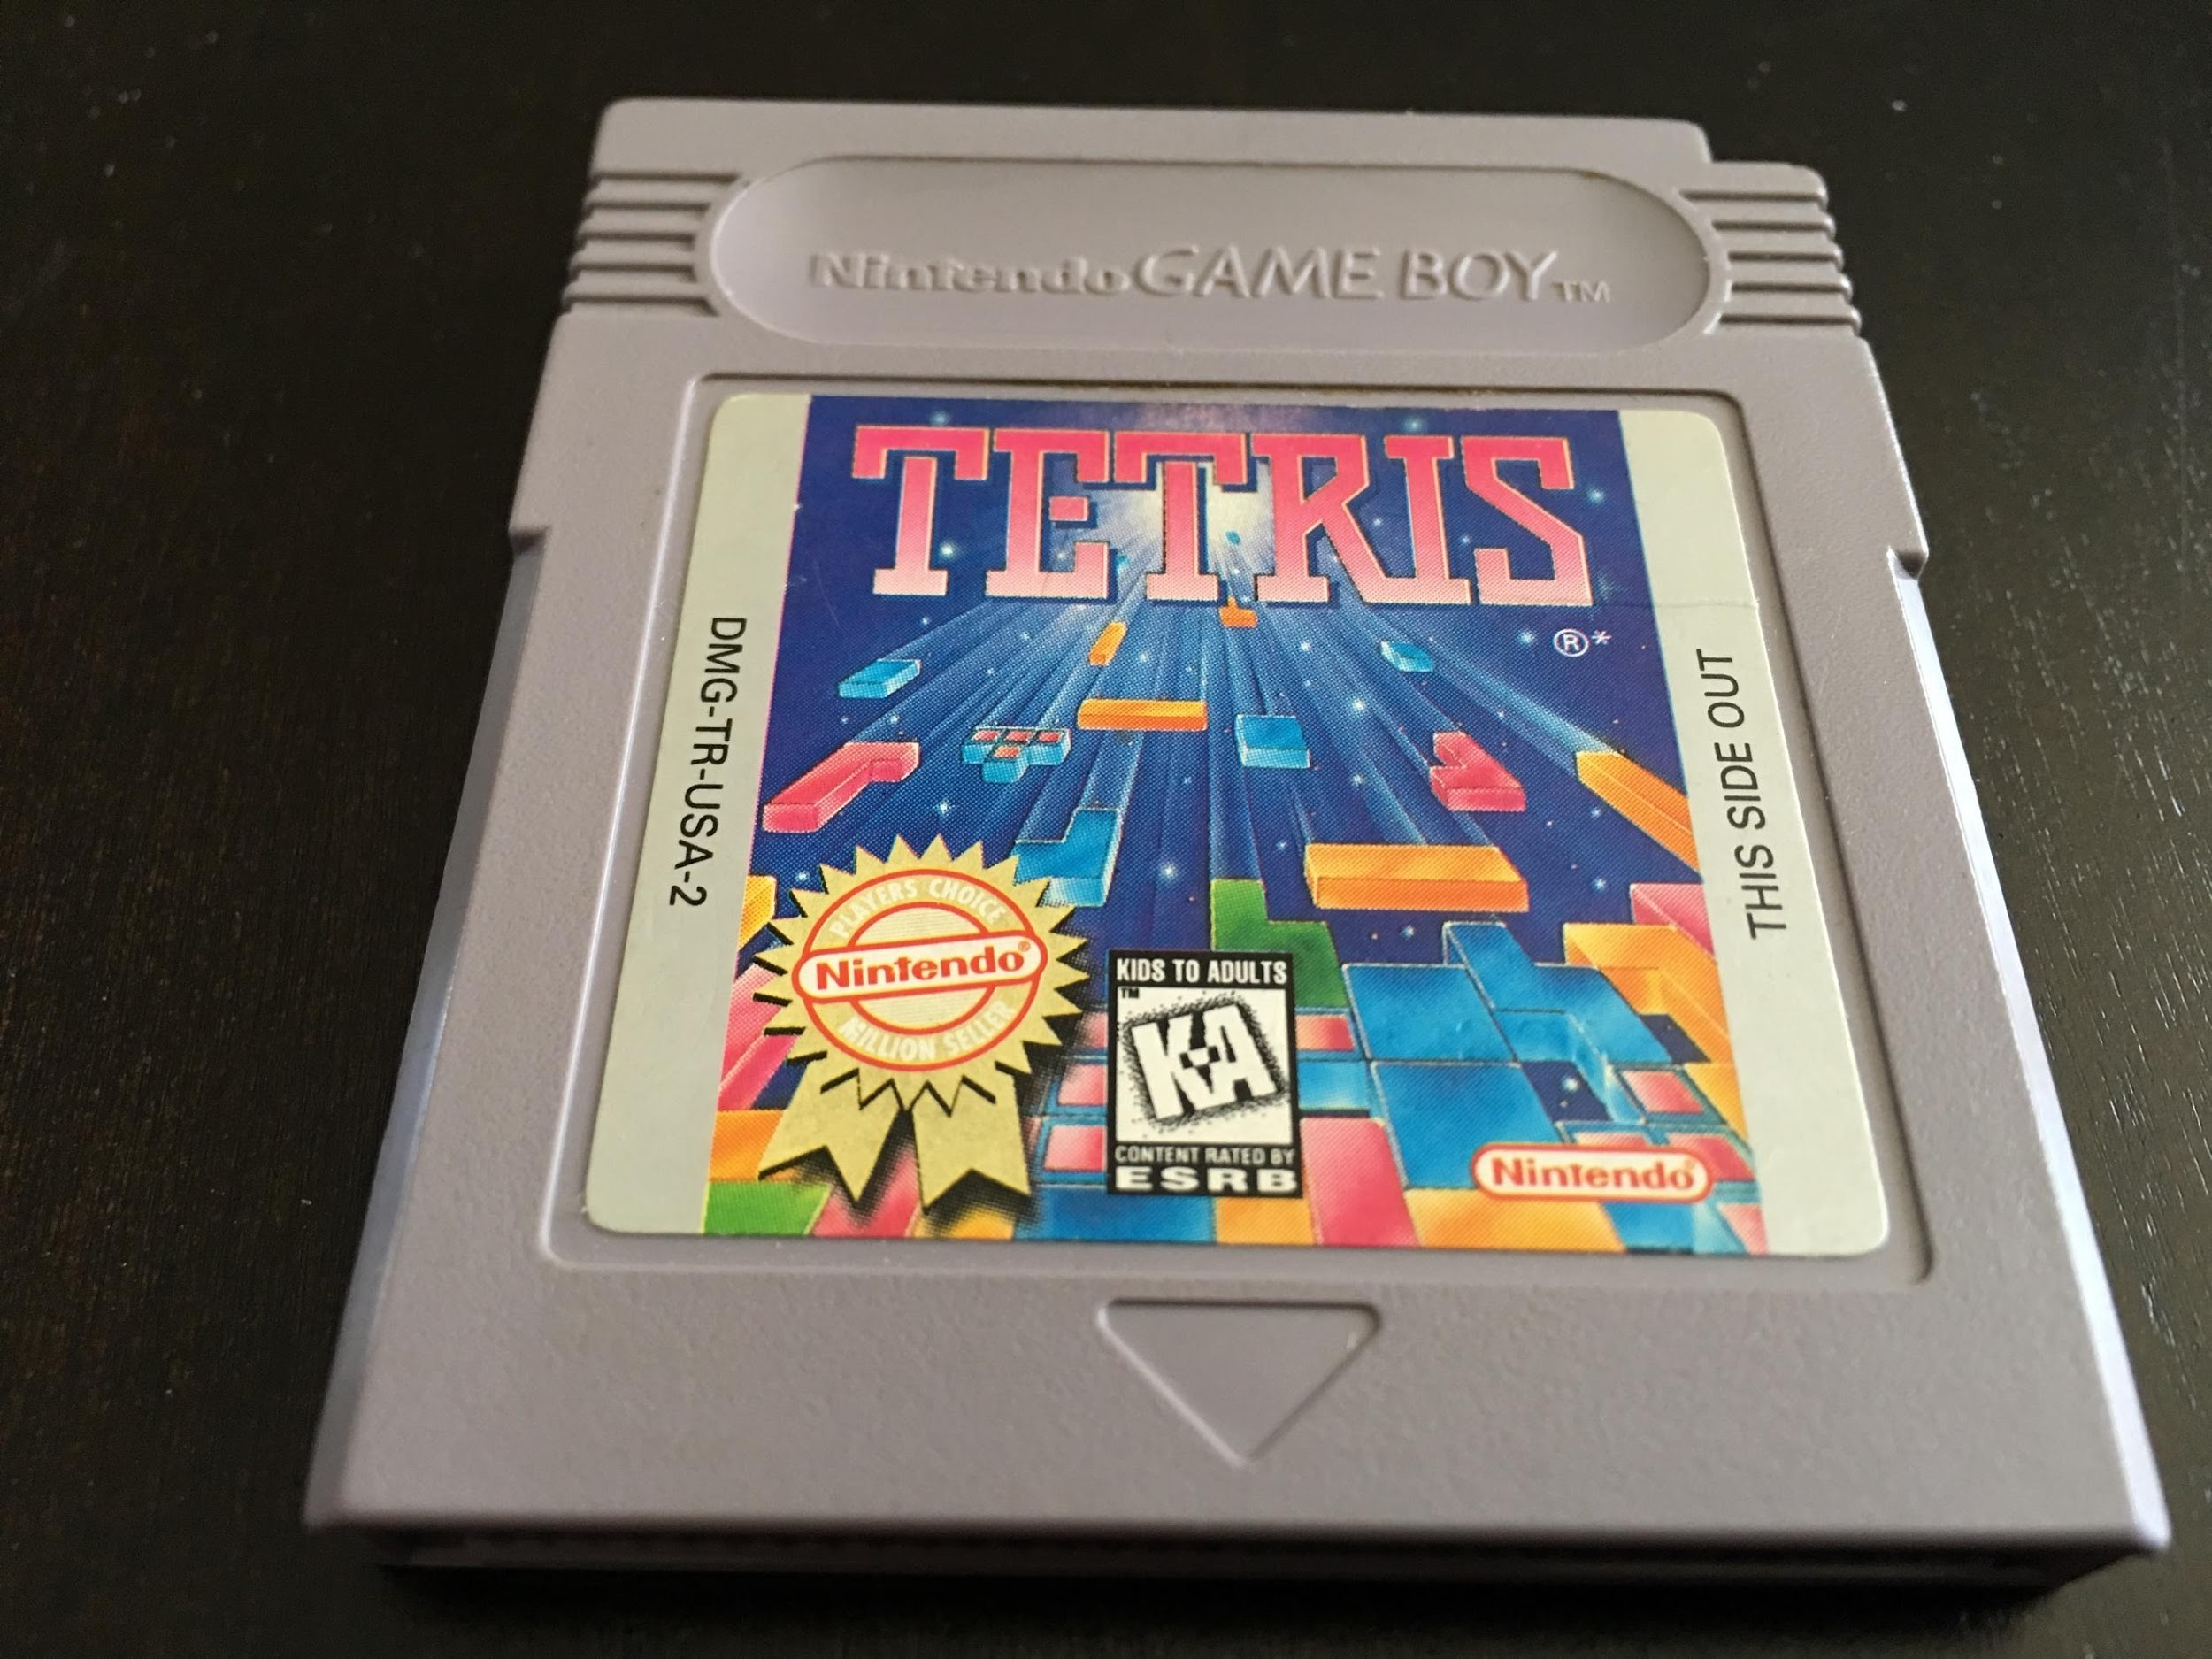 What Was It Like to Play Tetris on the Game Boy?